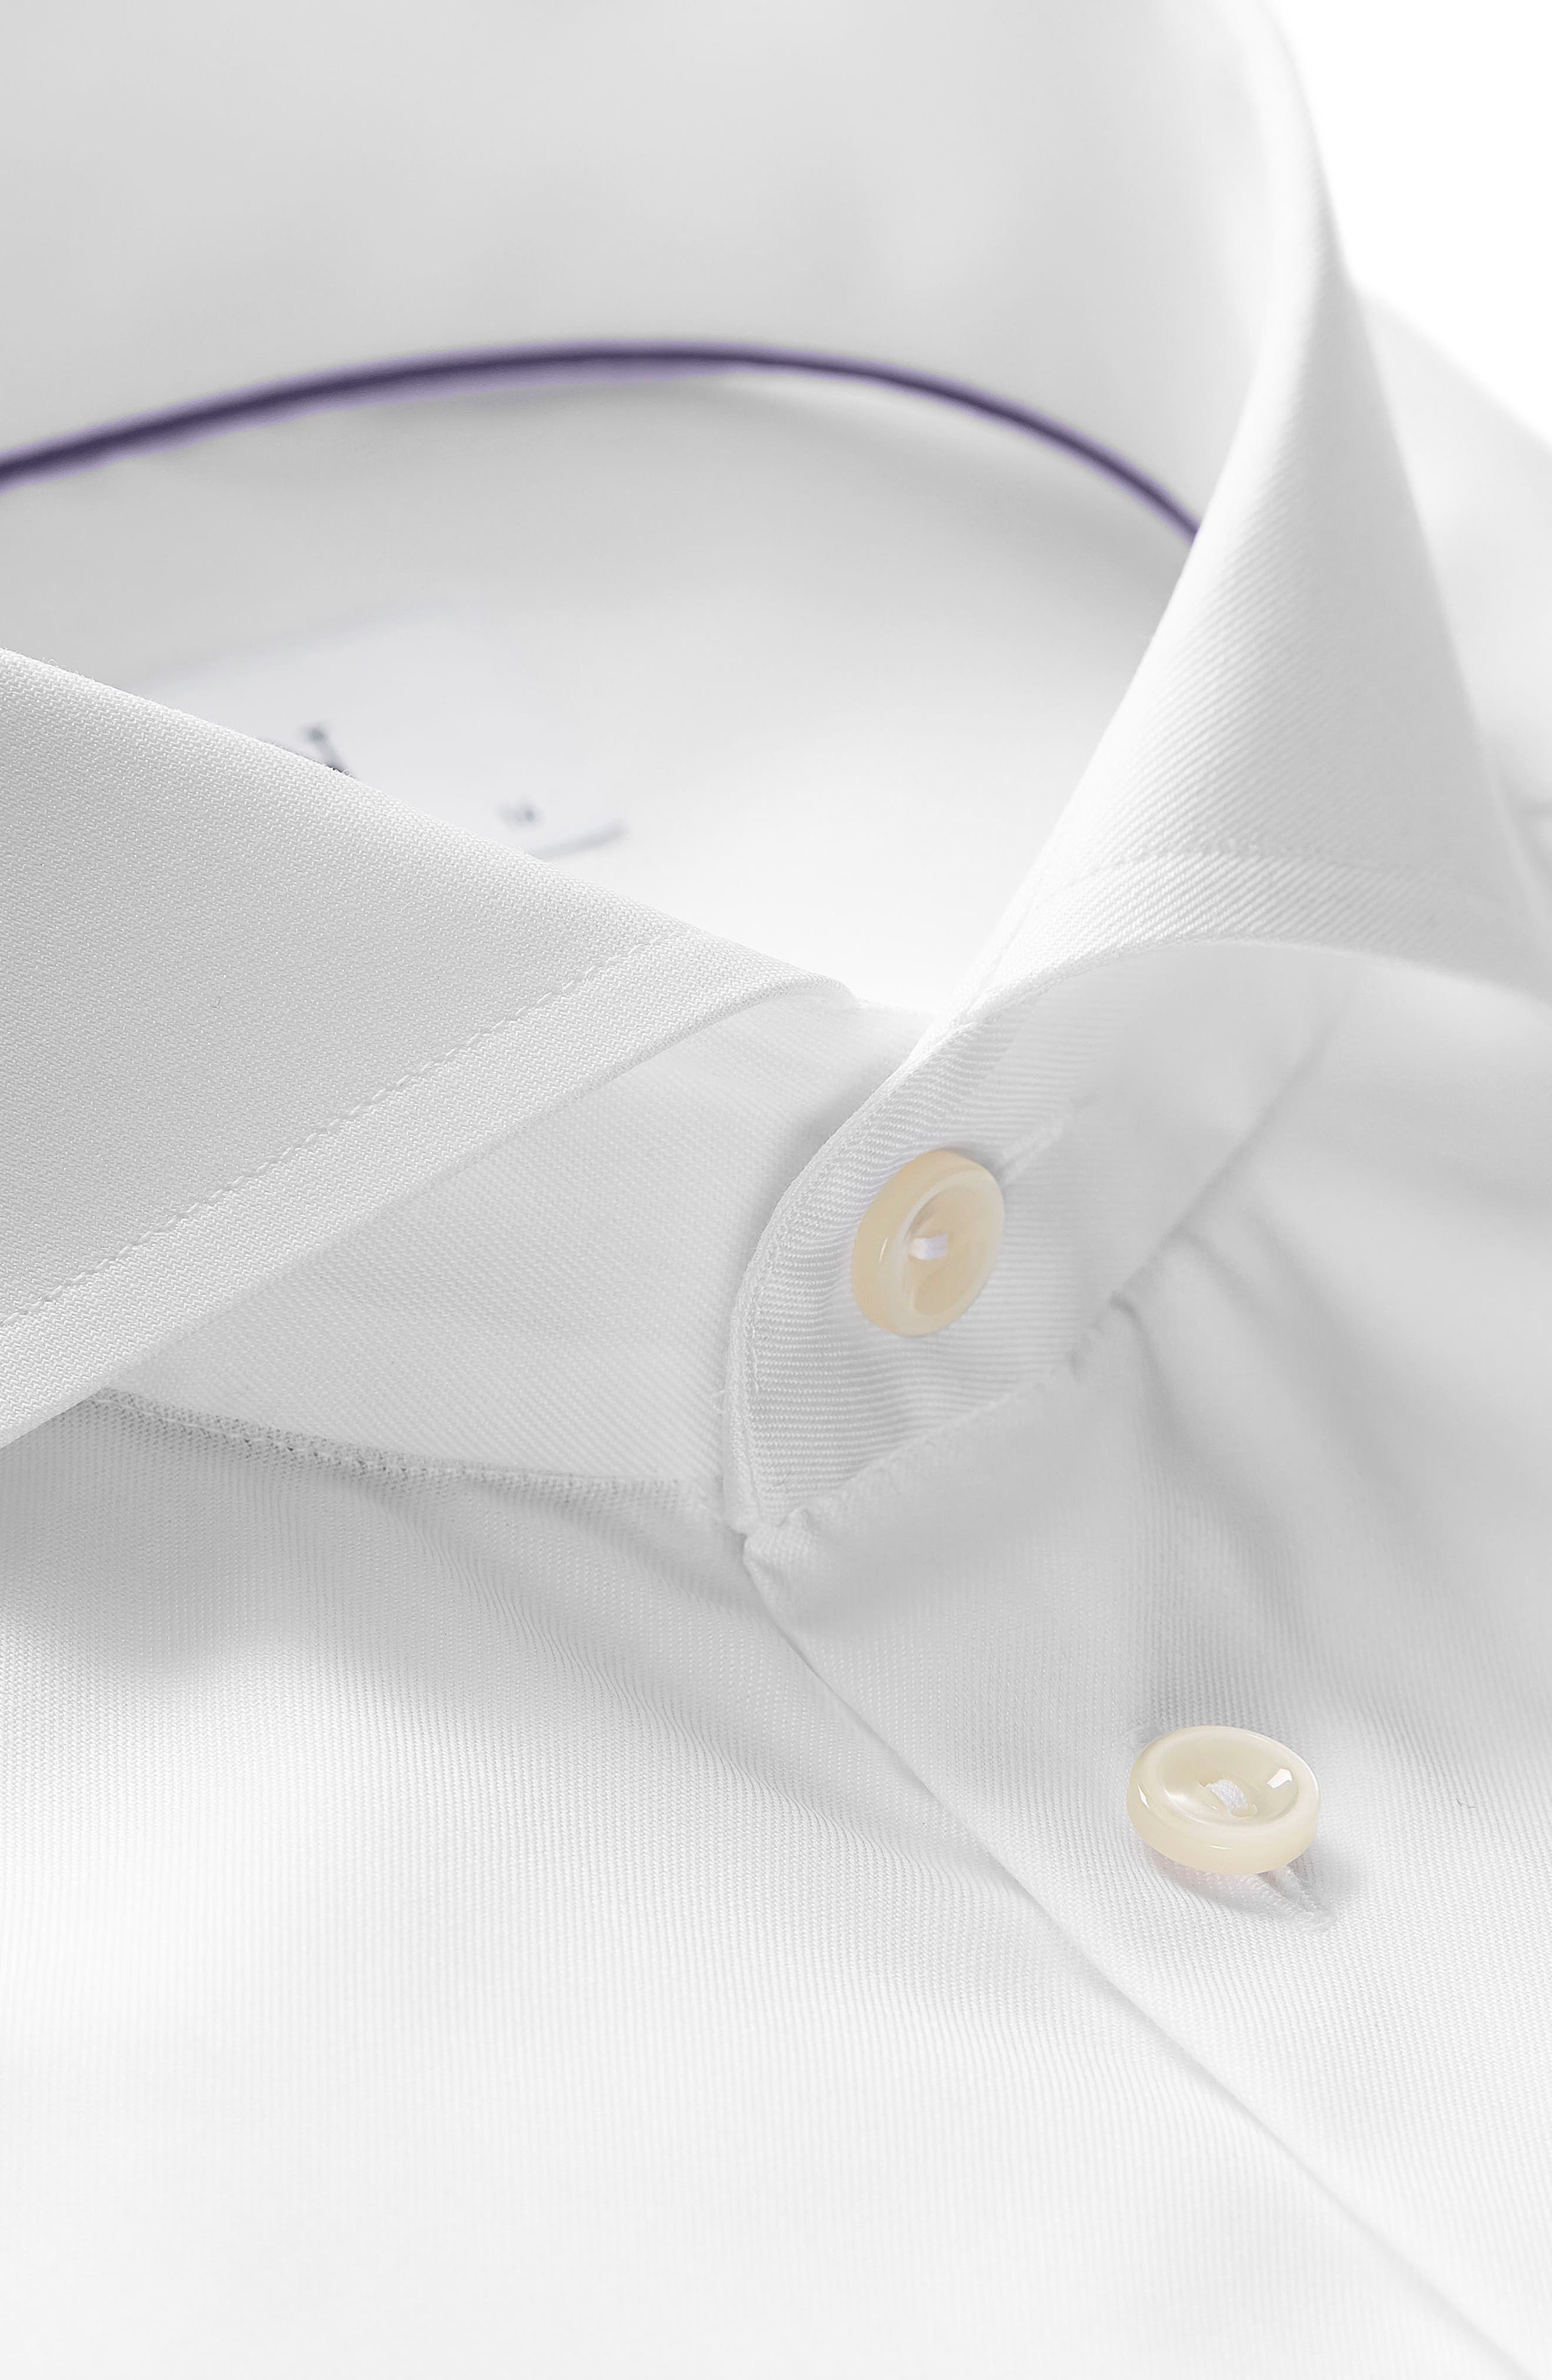 Extra Slim Fit Solid Dress Shirt,                             Alternate thumbnail 2, color,                             White